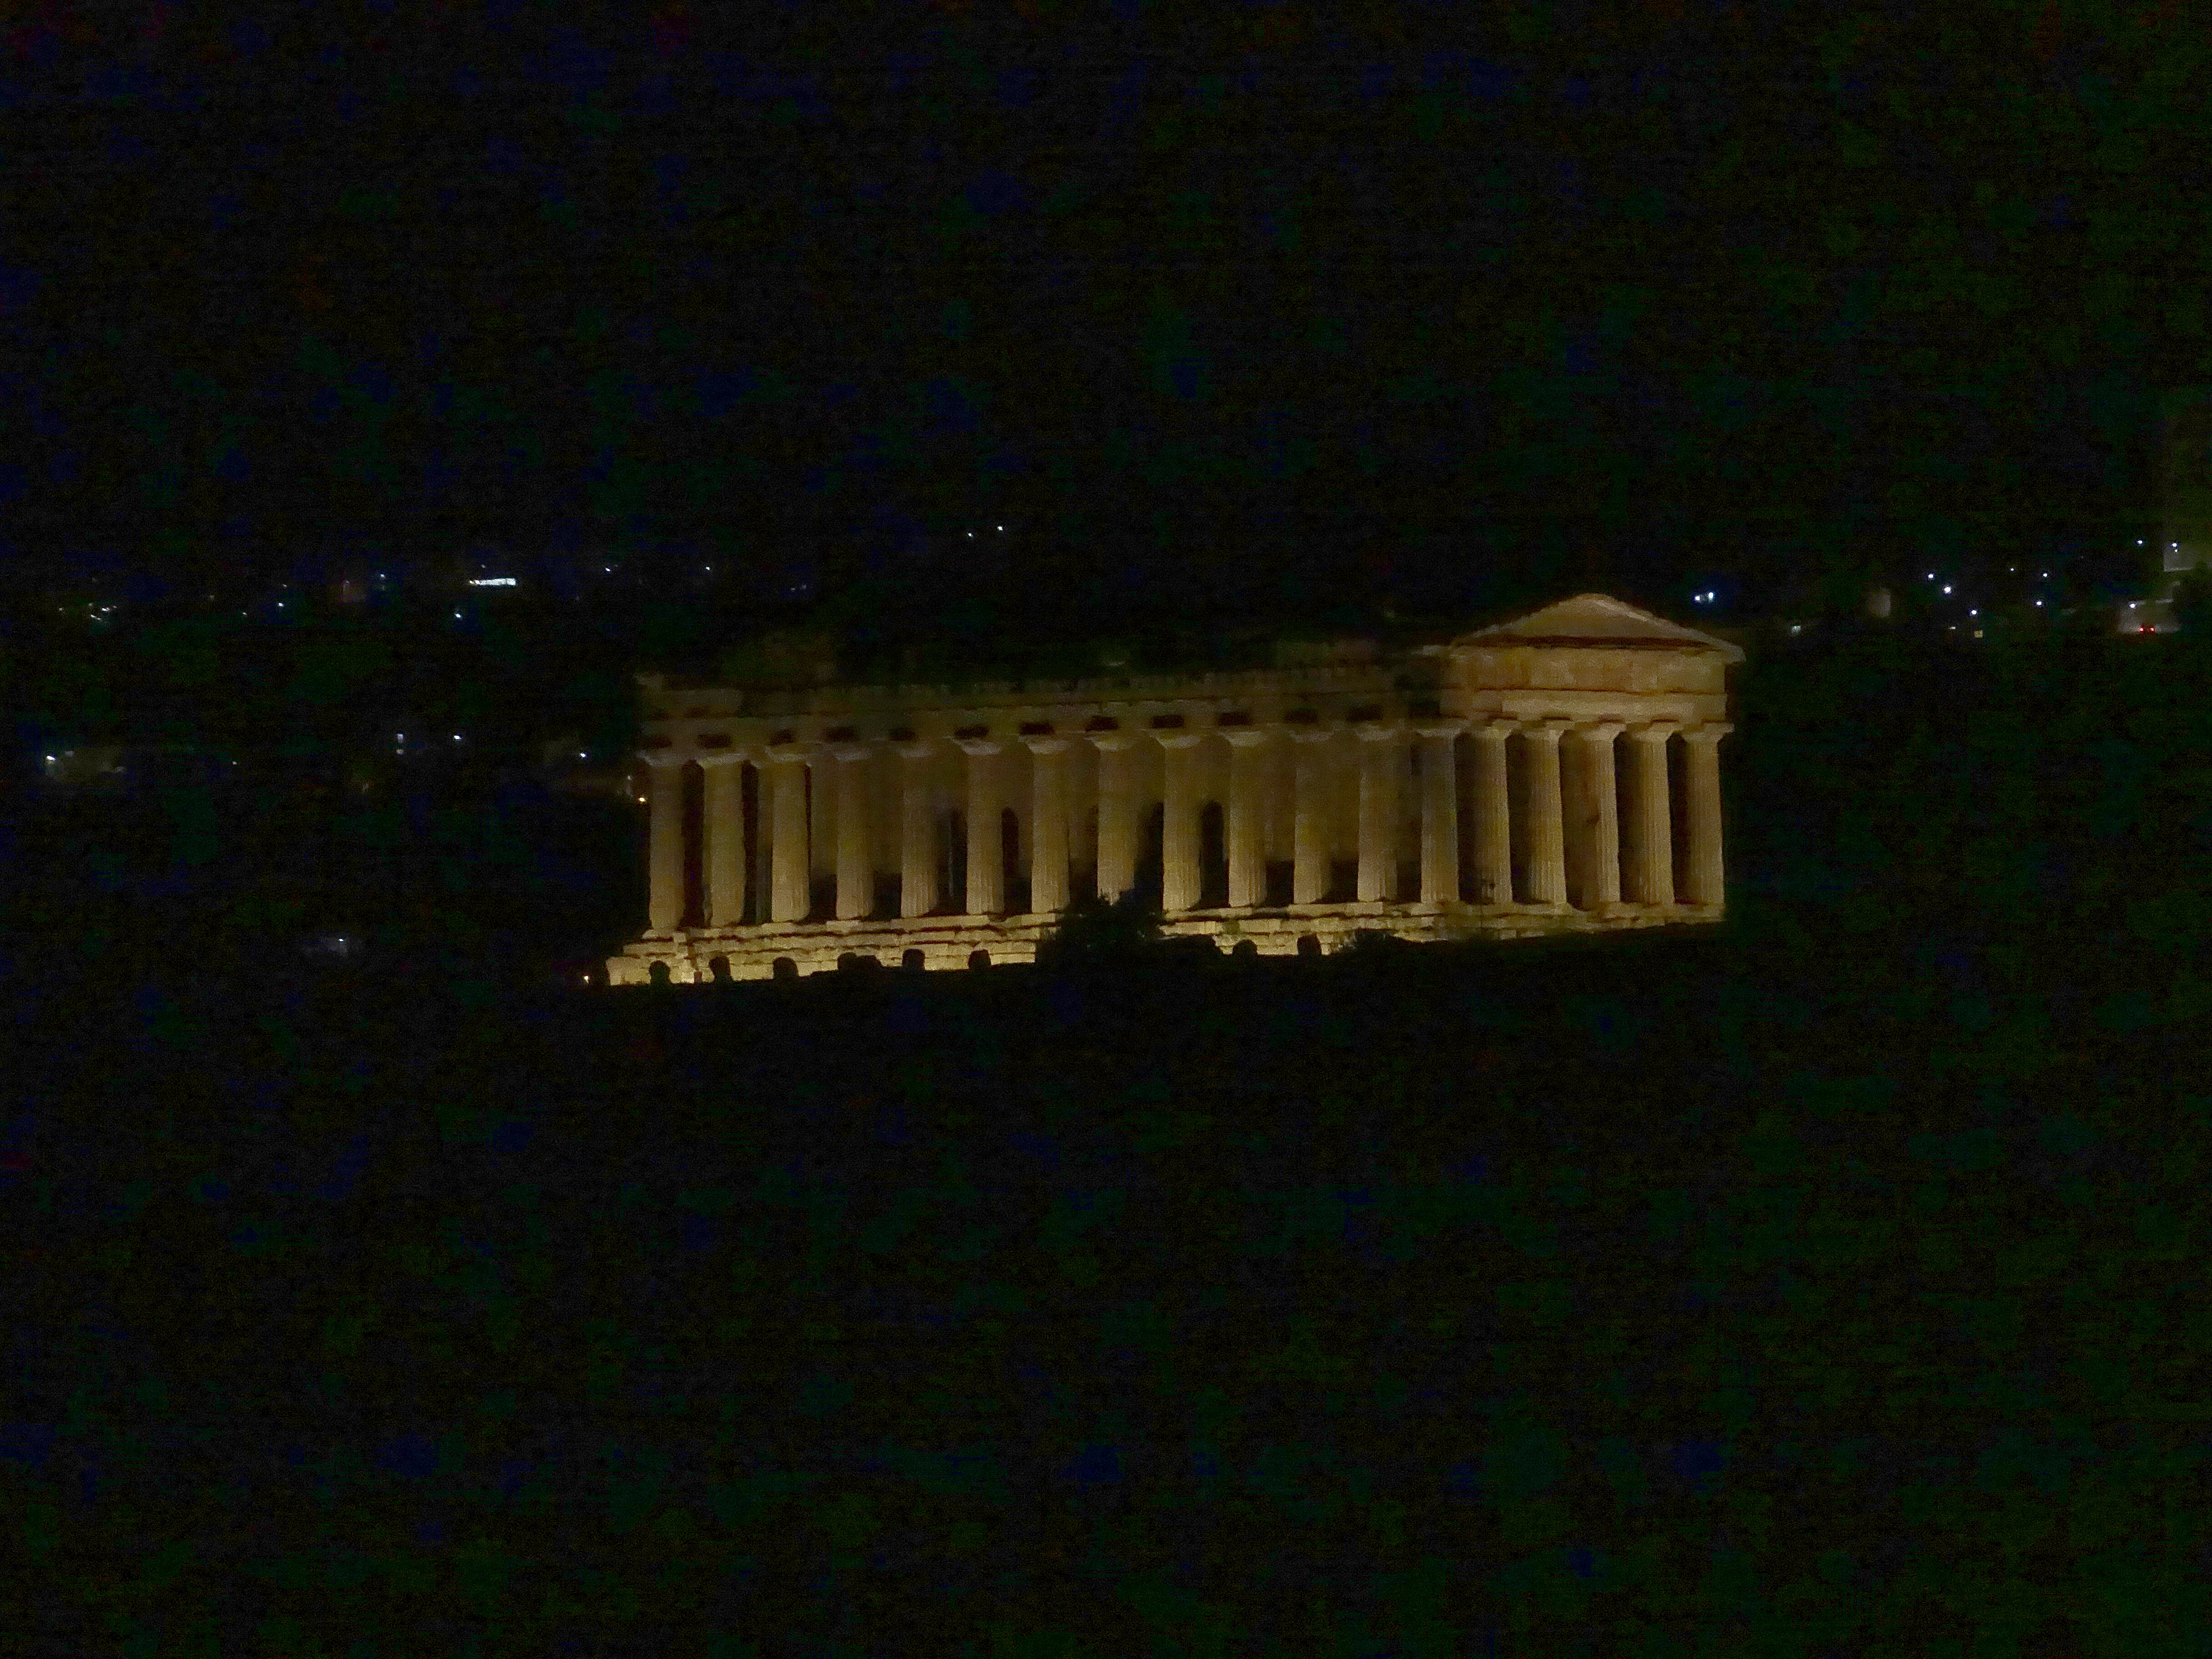 Temple of Concordia at night